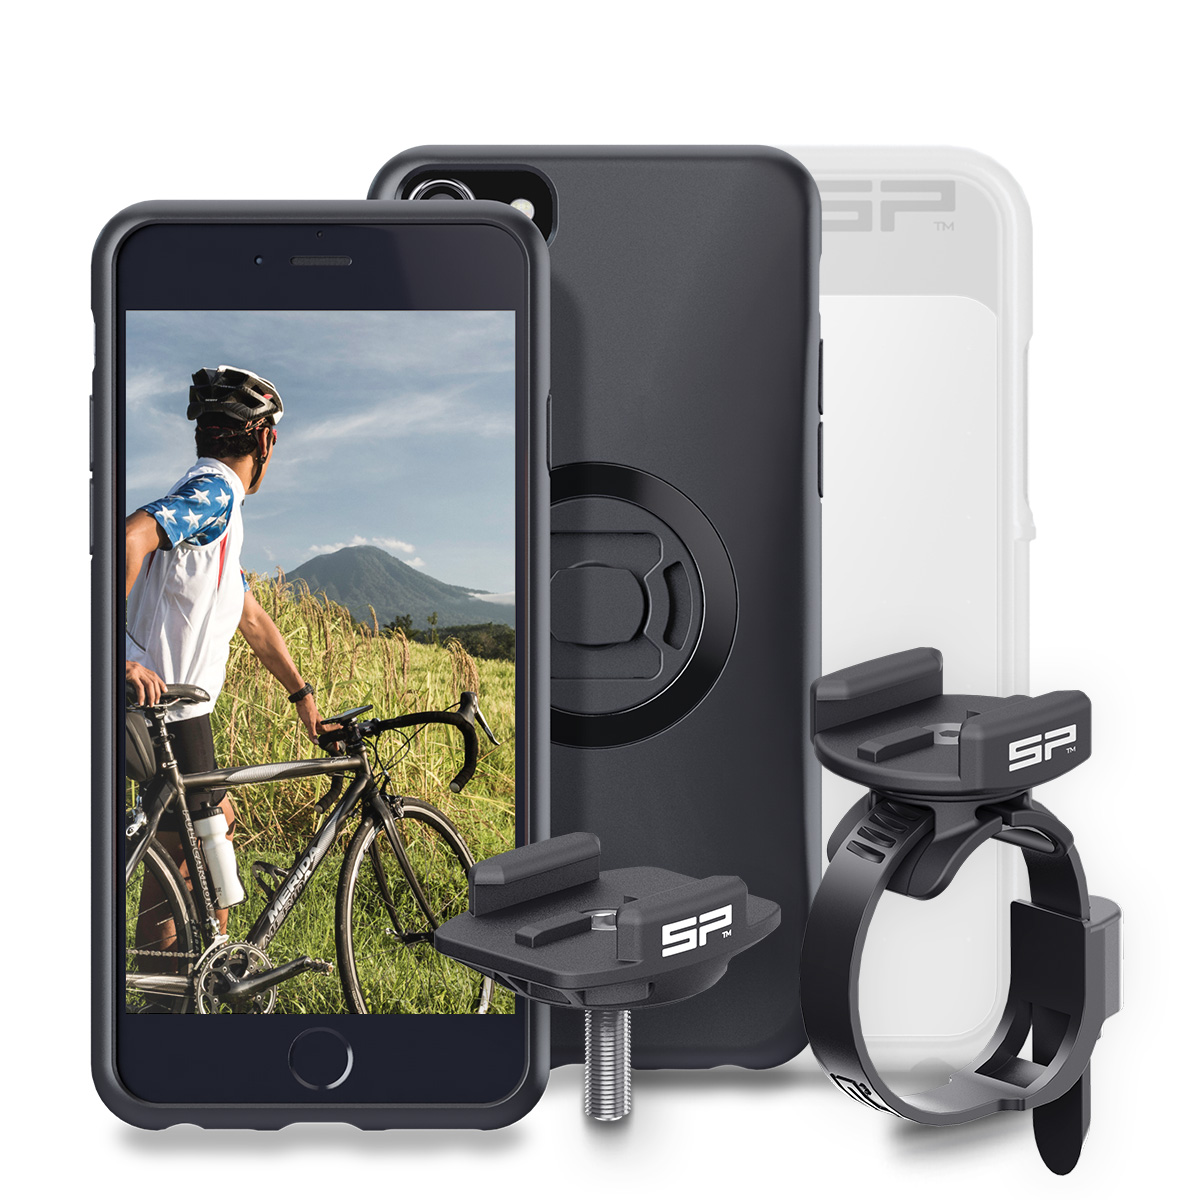 SP Connect Bike Bundle iPhone 7+/6s+/6+